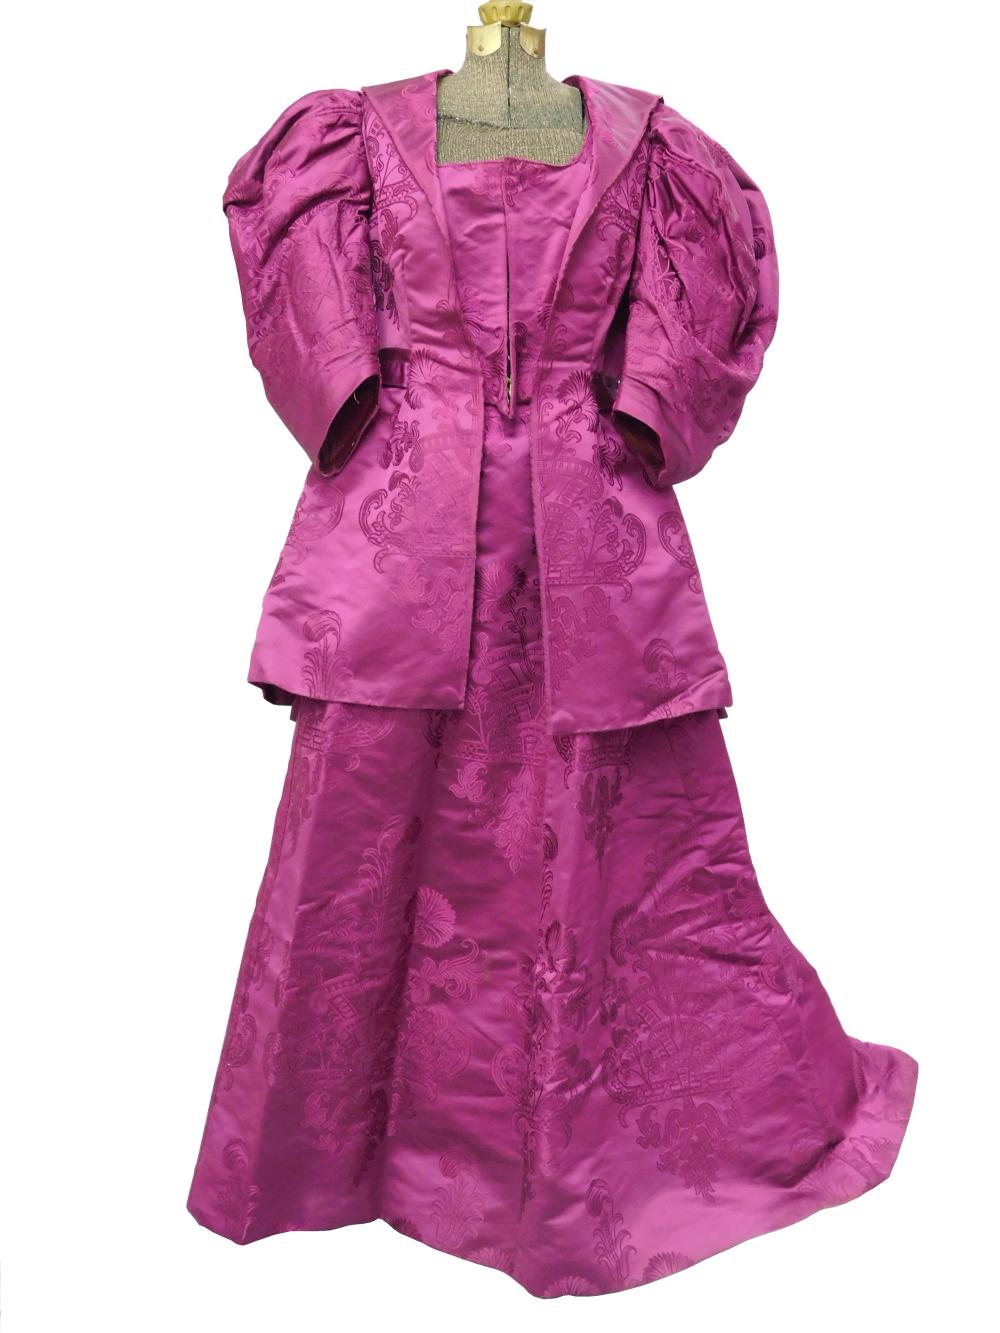 House of Worth fuchsia brocaded silk reception dress, c. 1890's, two pieces, jacket and skirt, museum provenance, details include: j..